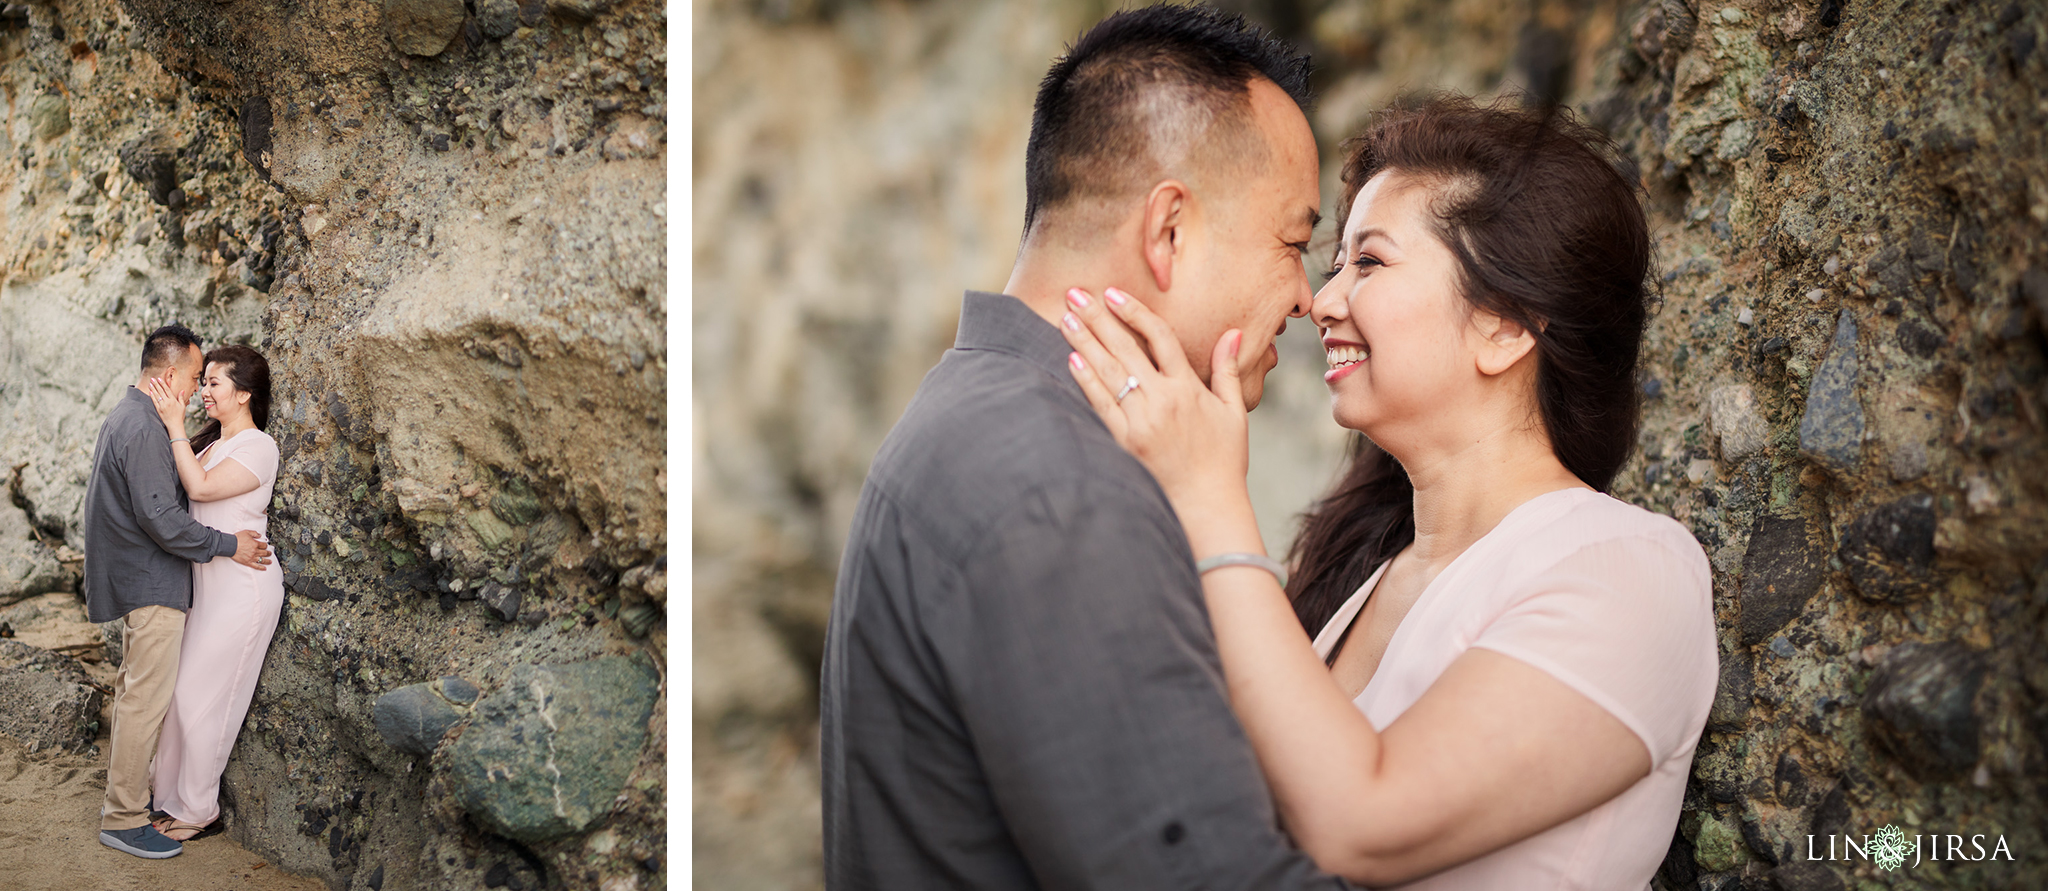 06 Treasure Island Laguna Beach Engagement Photography